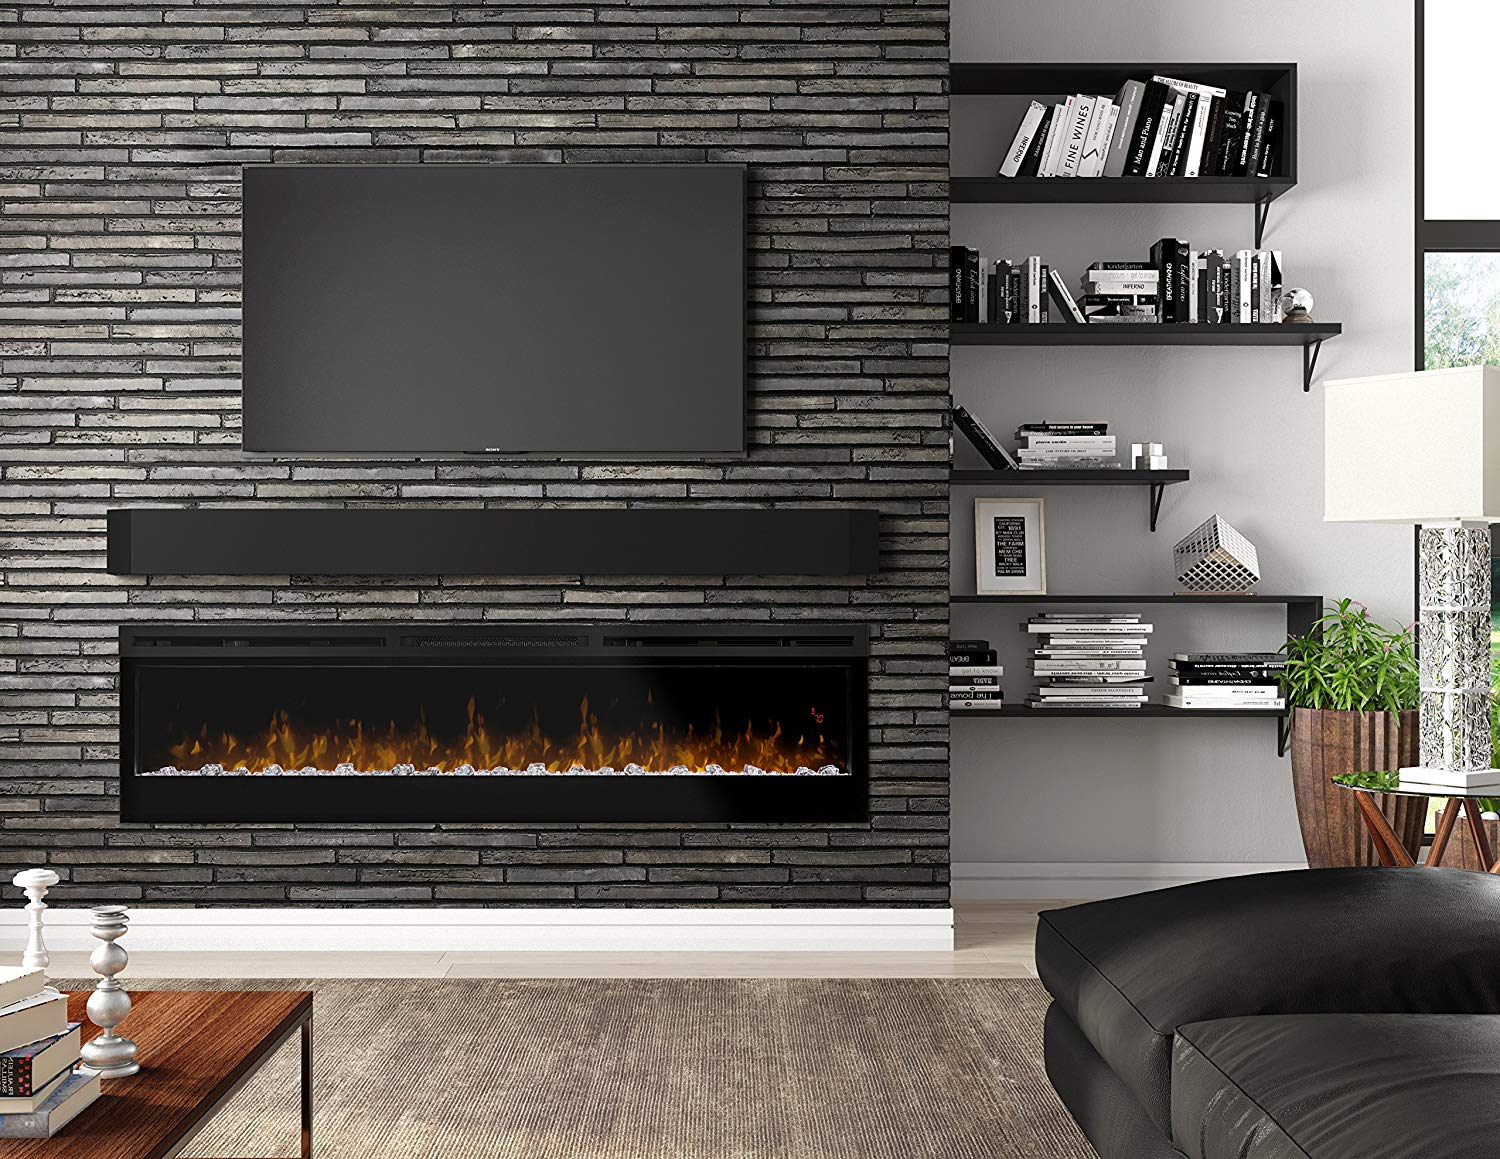 Plug In Electric Fireplaces Best Electric Fireplace 2019 Top 15 Reviews Ultimate Buying Guide